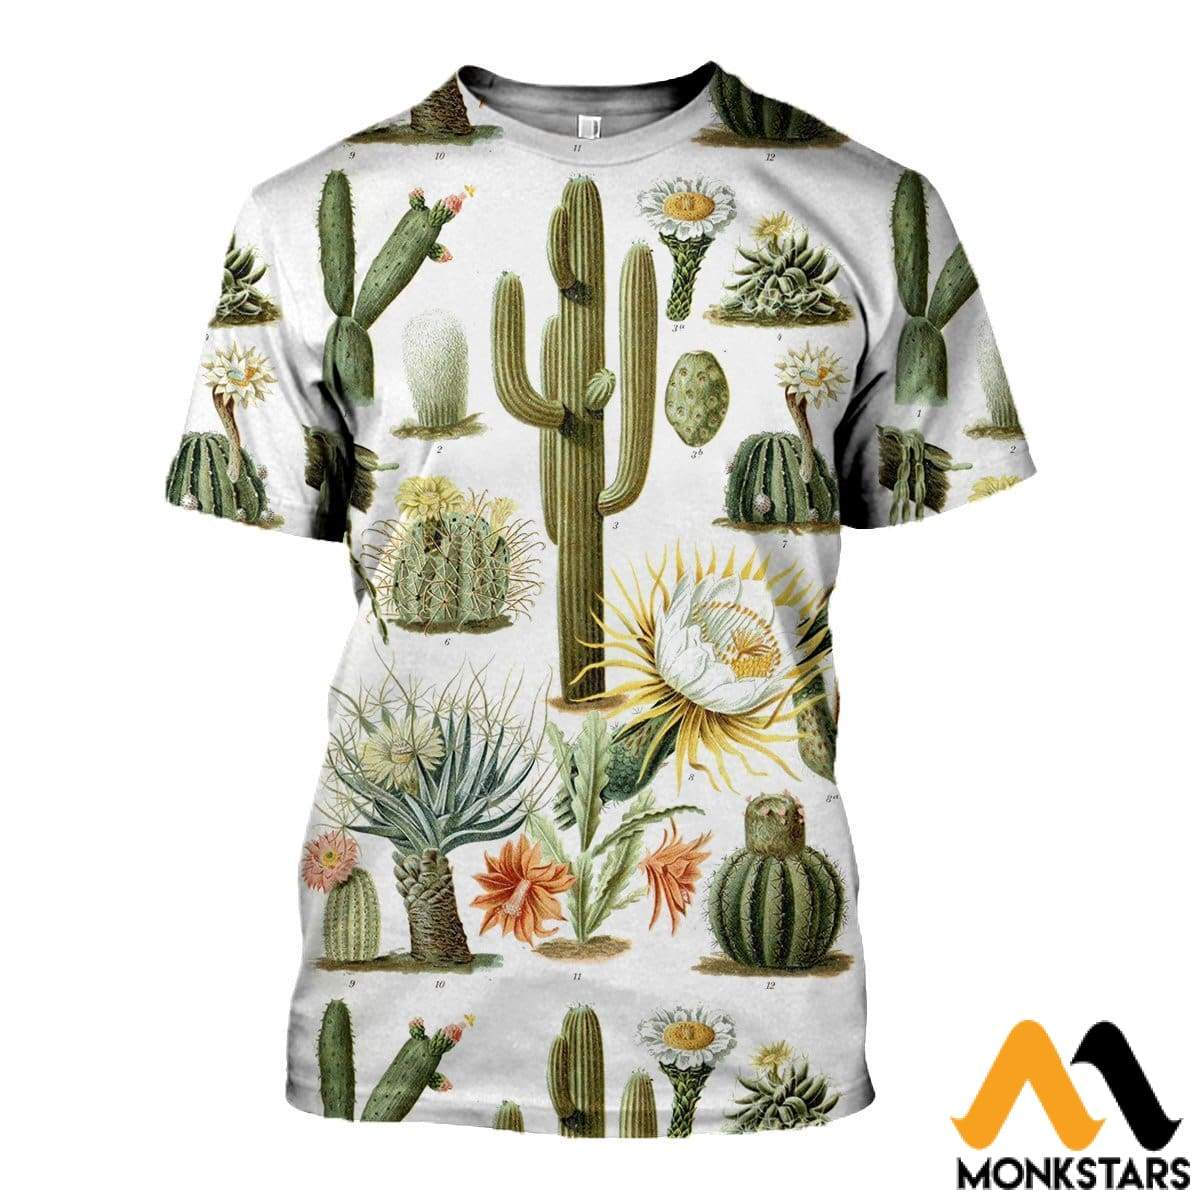 3c801bedbedd 3D All Over Printed Vintage Cactus Shirts And Shorts T-Shirt   Xs Clothes